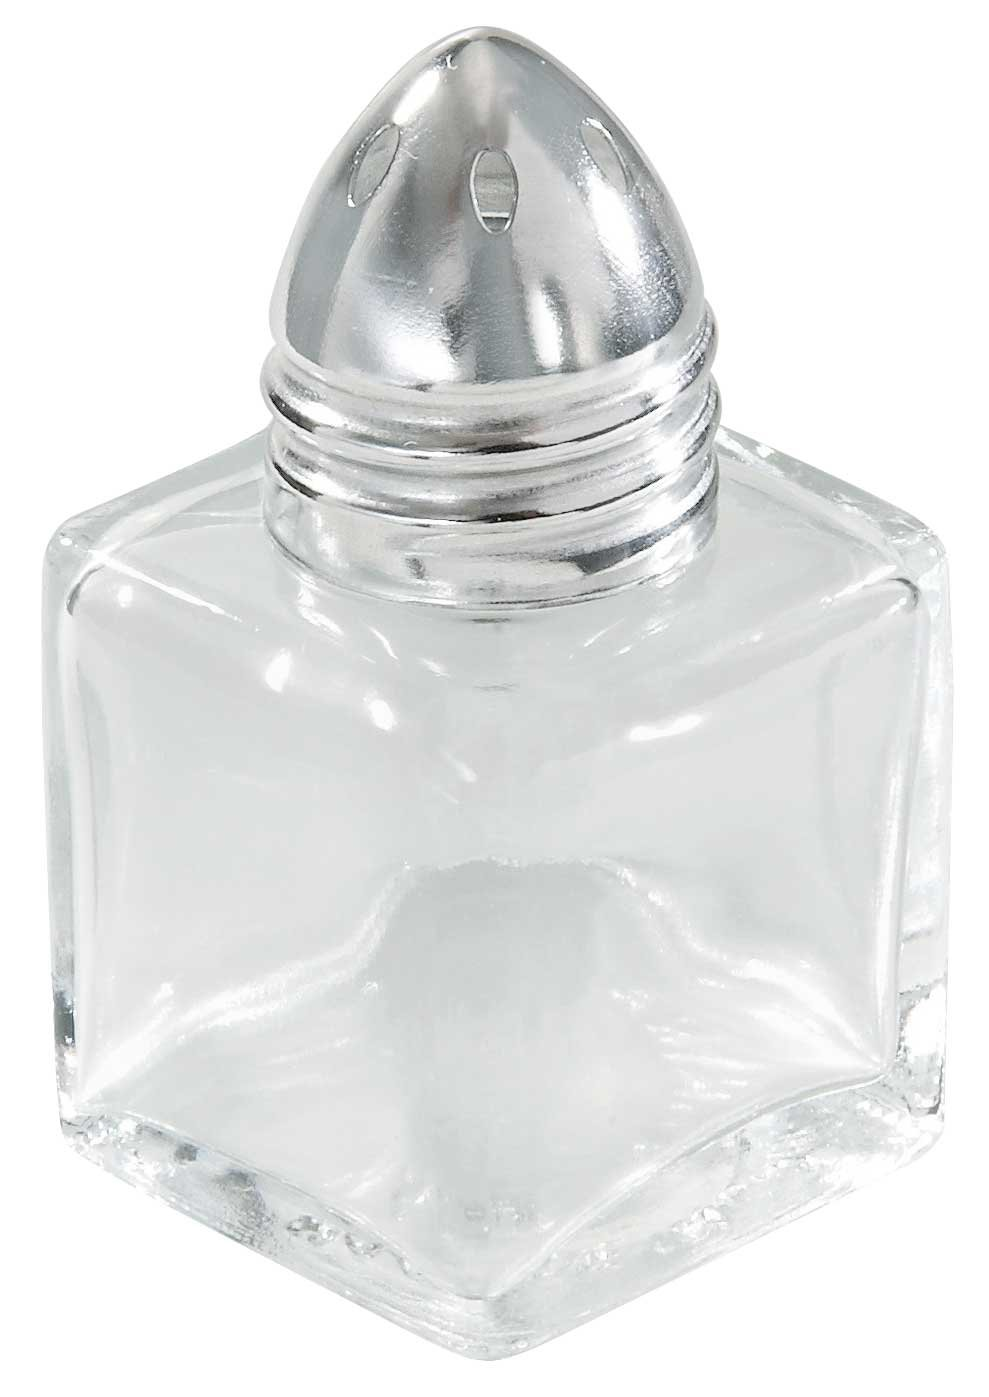 Winco 12-Piece Square Shaker with Chrome Plated Top, 1/2-Ounce